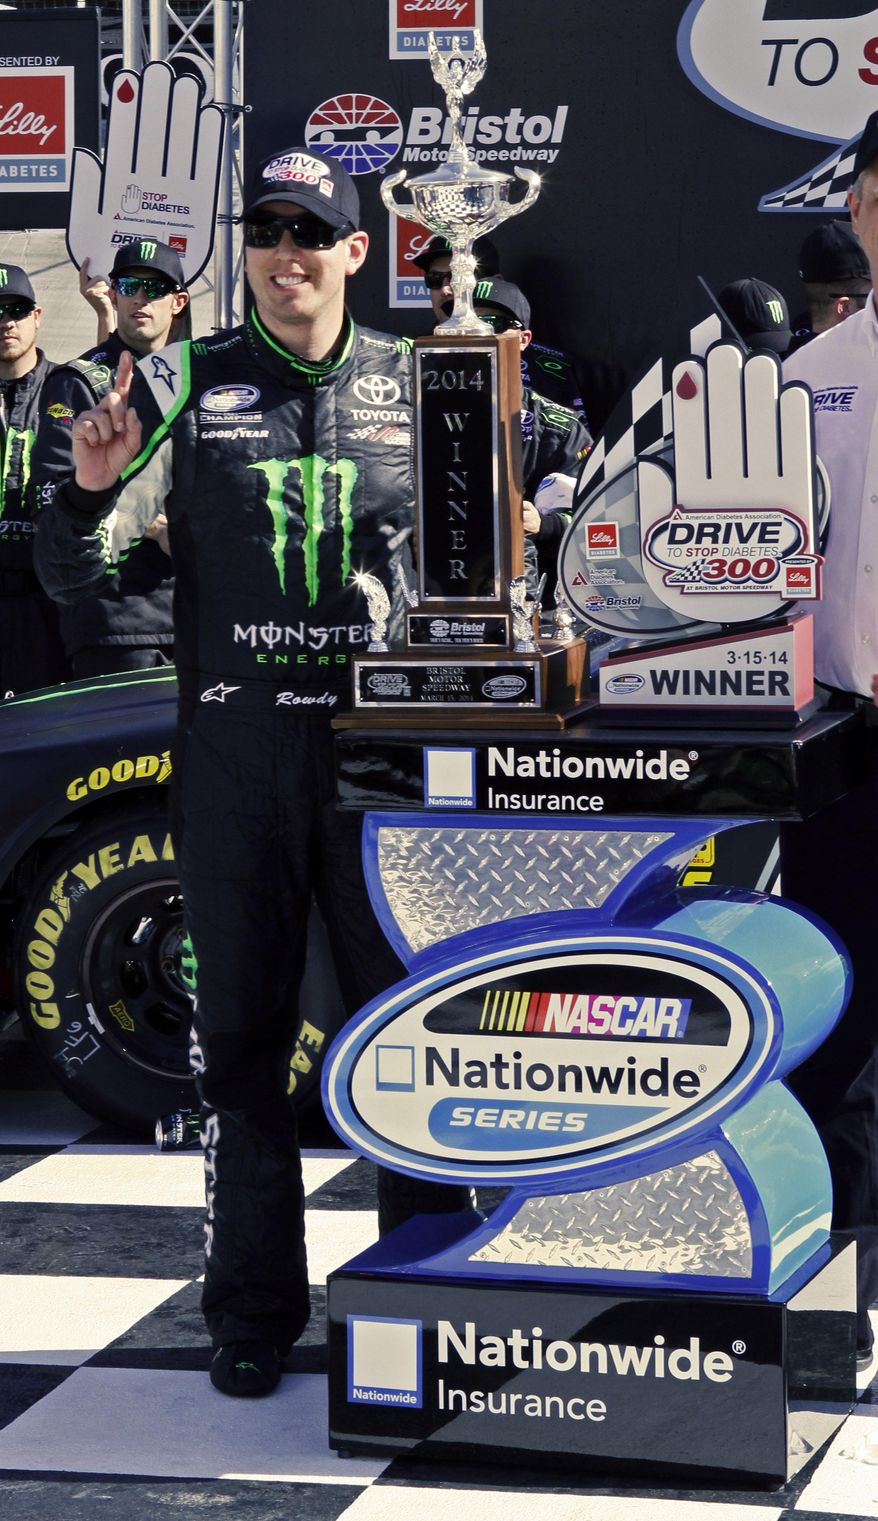 Driver Kyle Busch (54) stand with the trophy after winning the NASCAR Nationwide series auto race at Bristol Motor Speedway on Saturday, March 15, 2014, in Bristol, Tenn. (AP Photo/Wade Payne)